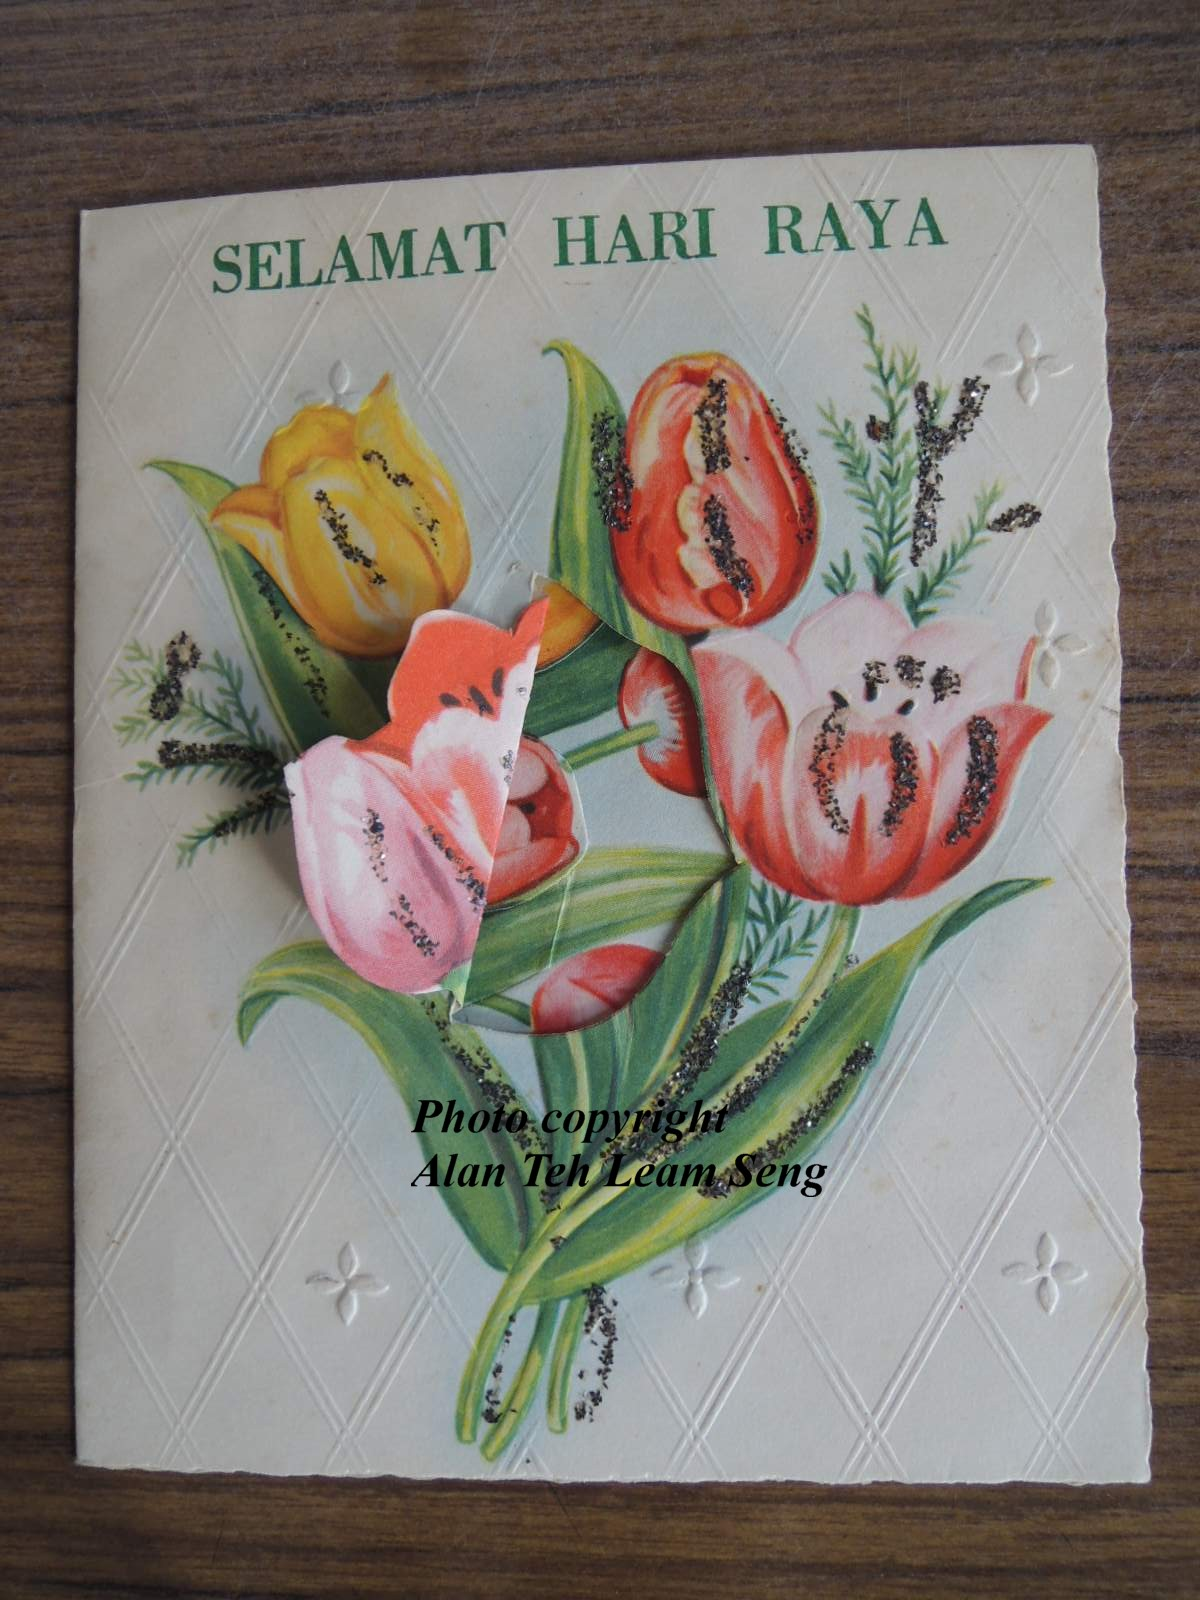 My travels 18 days to hari raya two vintage greeting cards from 18 days to hari raya two vintage greeting cards from england and west germany kristyandbryce Image collections